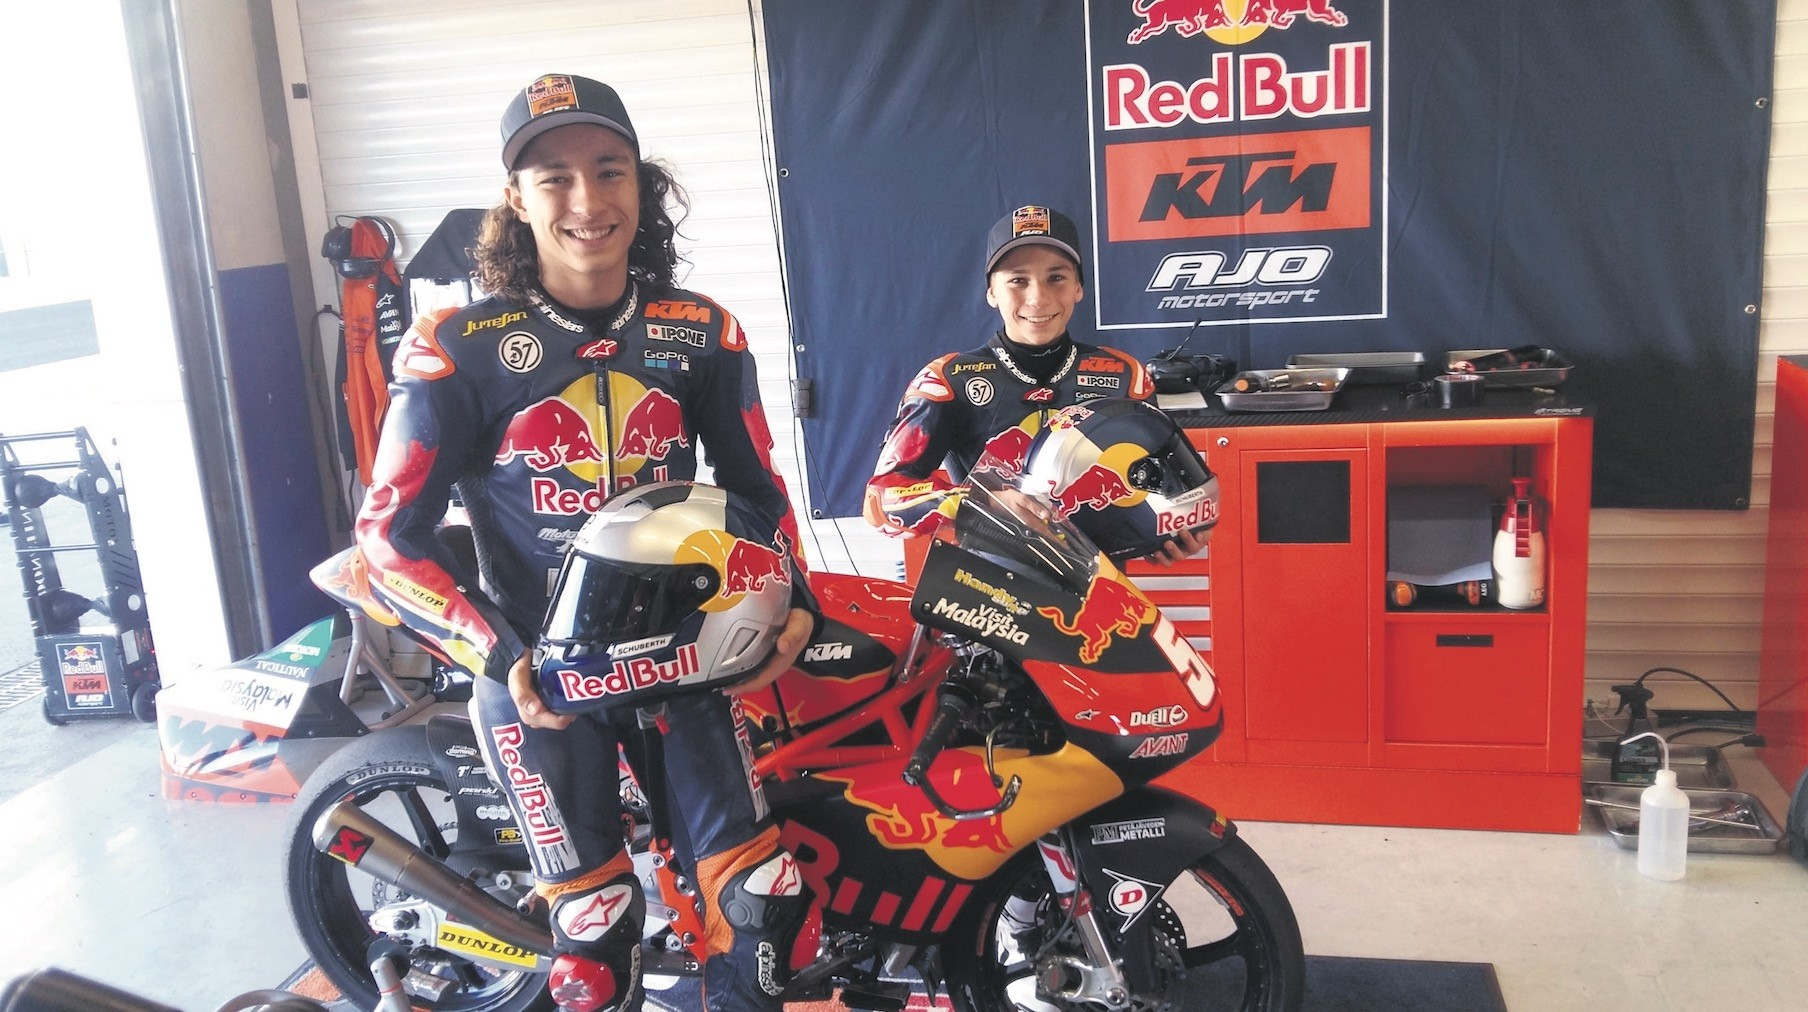 Deniz and Can u00d6ncu00fc pose in front of their motorcycle. The 14-year-old twins have been riding motorcycles since they were 8.